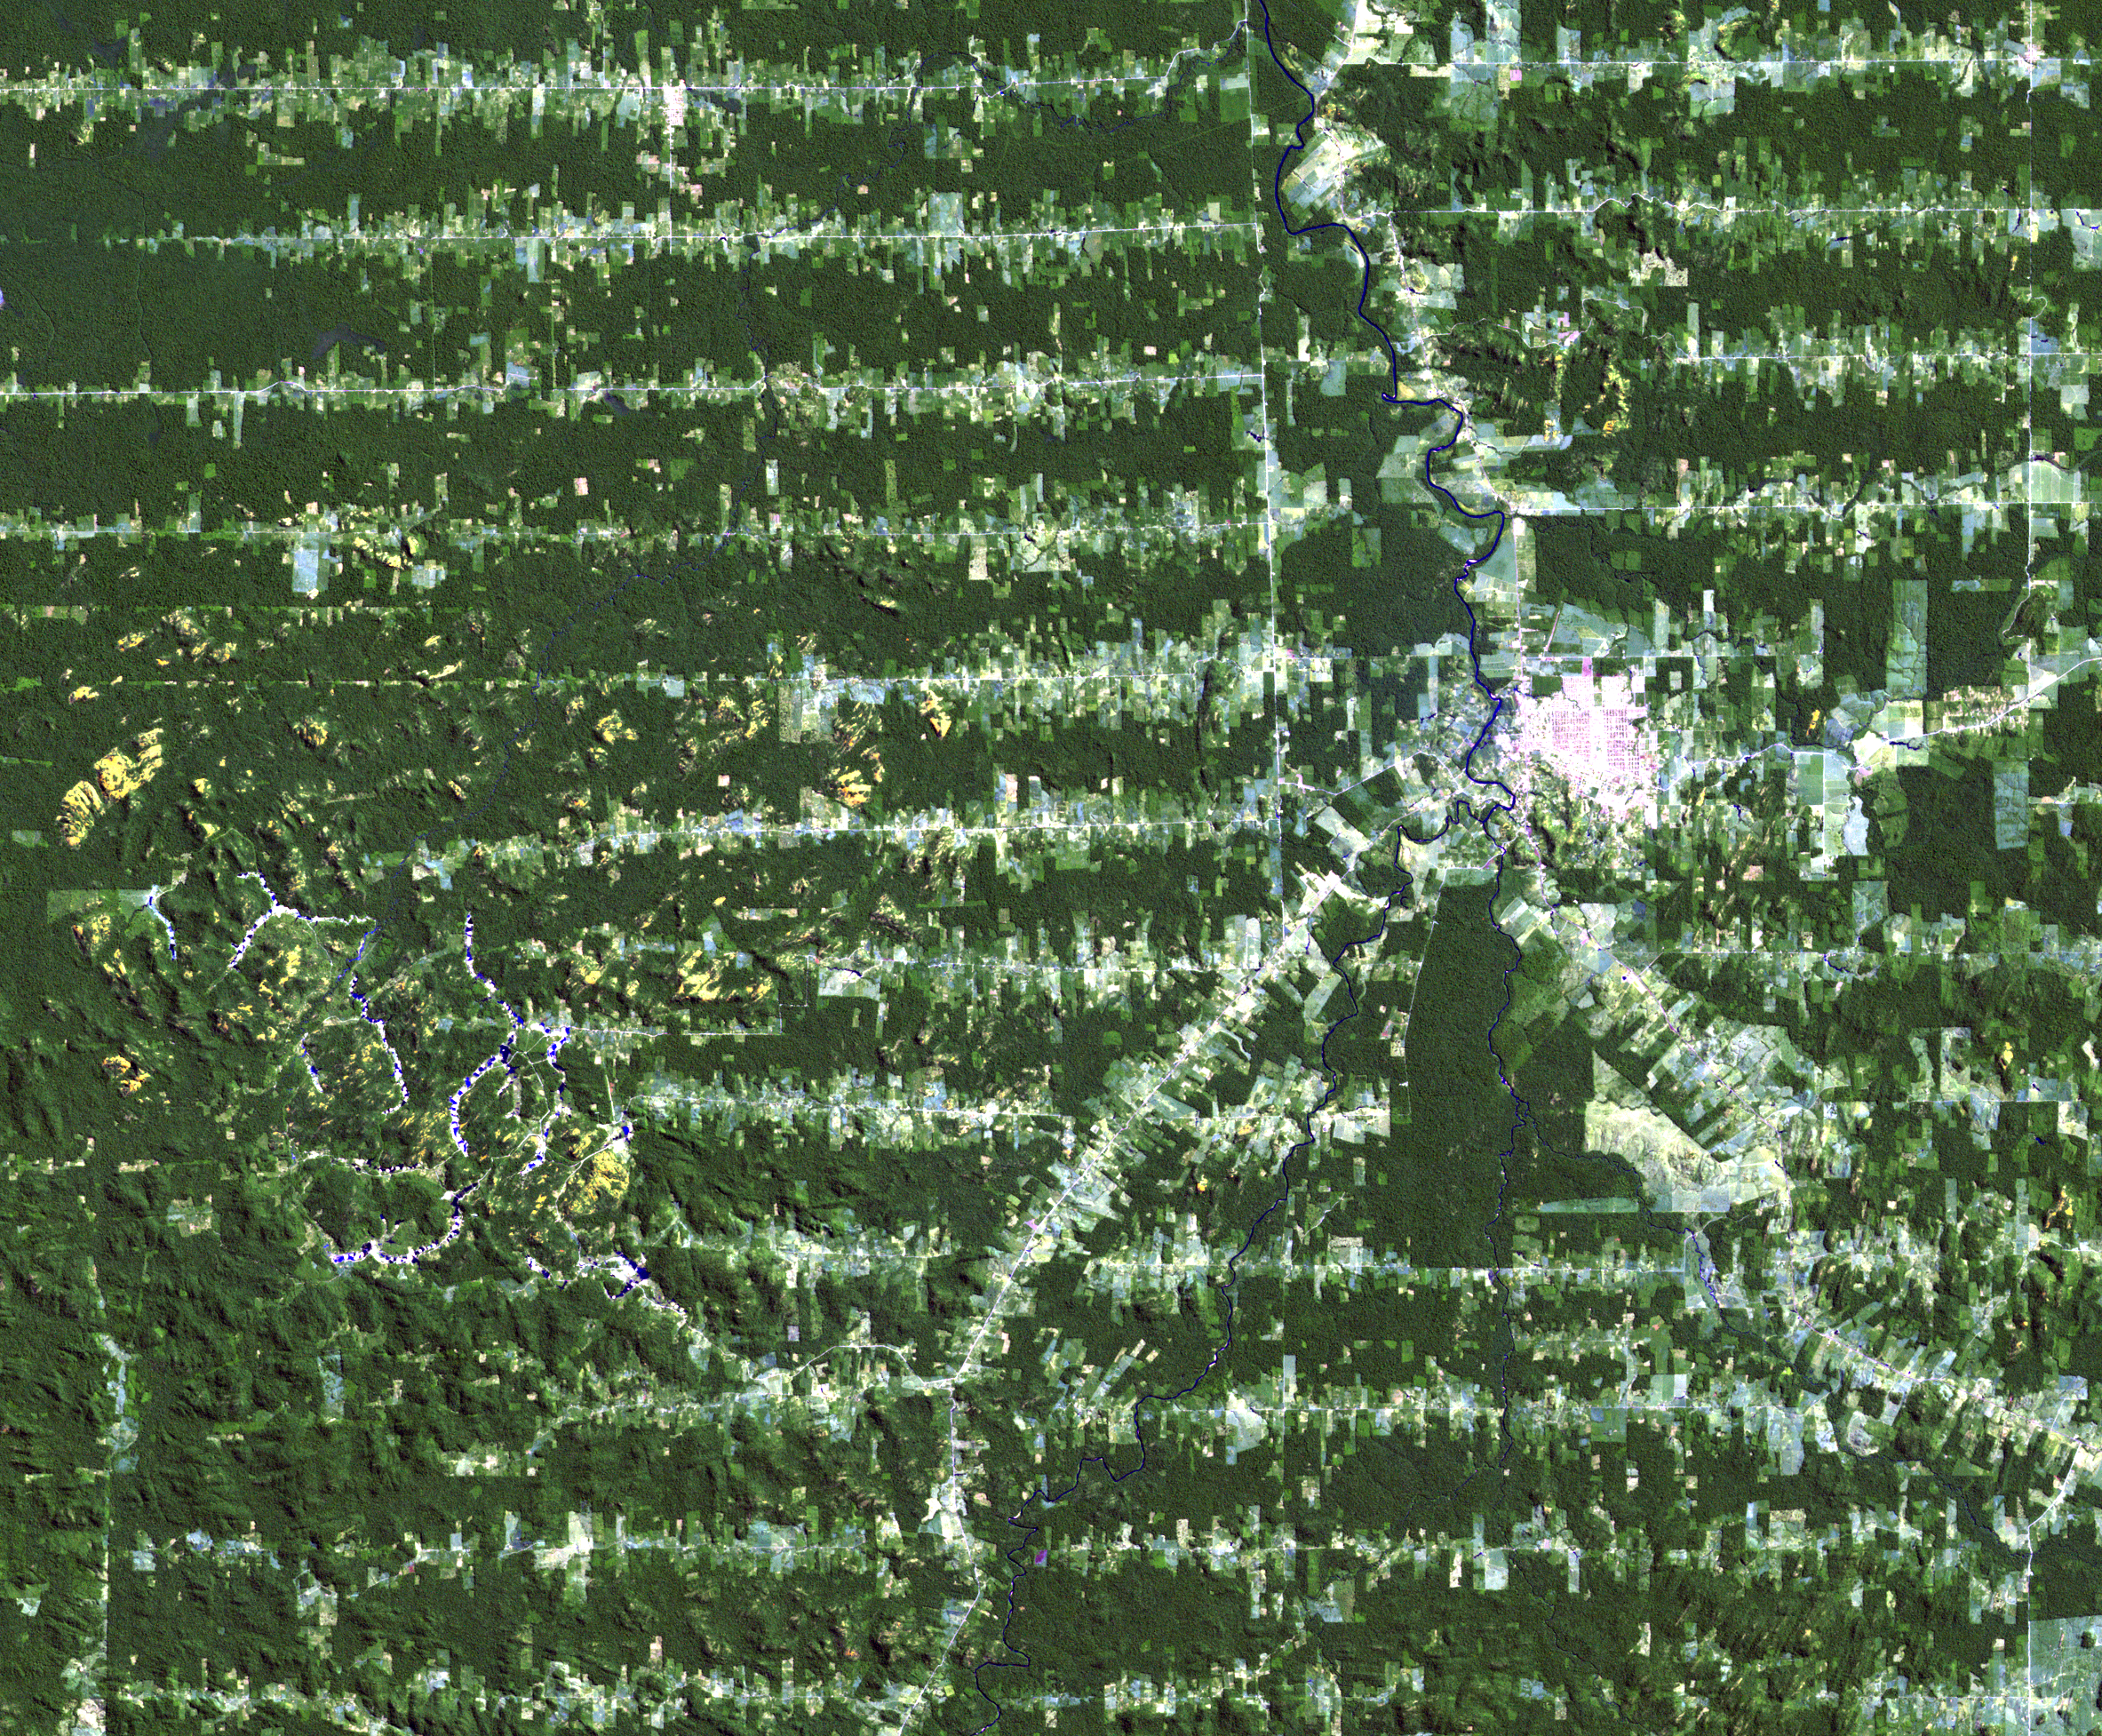 June 22, 1992, Landsat 4 (path/row 232/67) — Ariquemes, Brazil